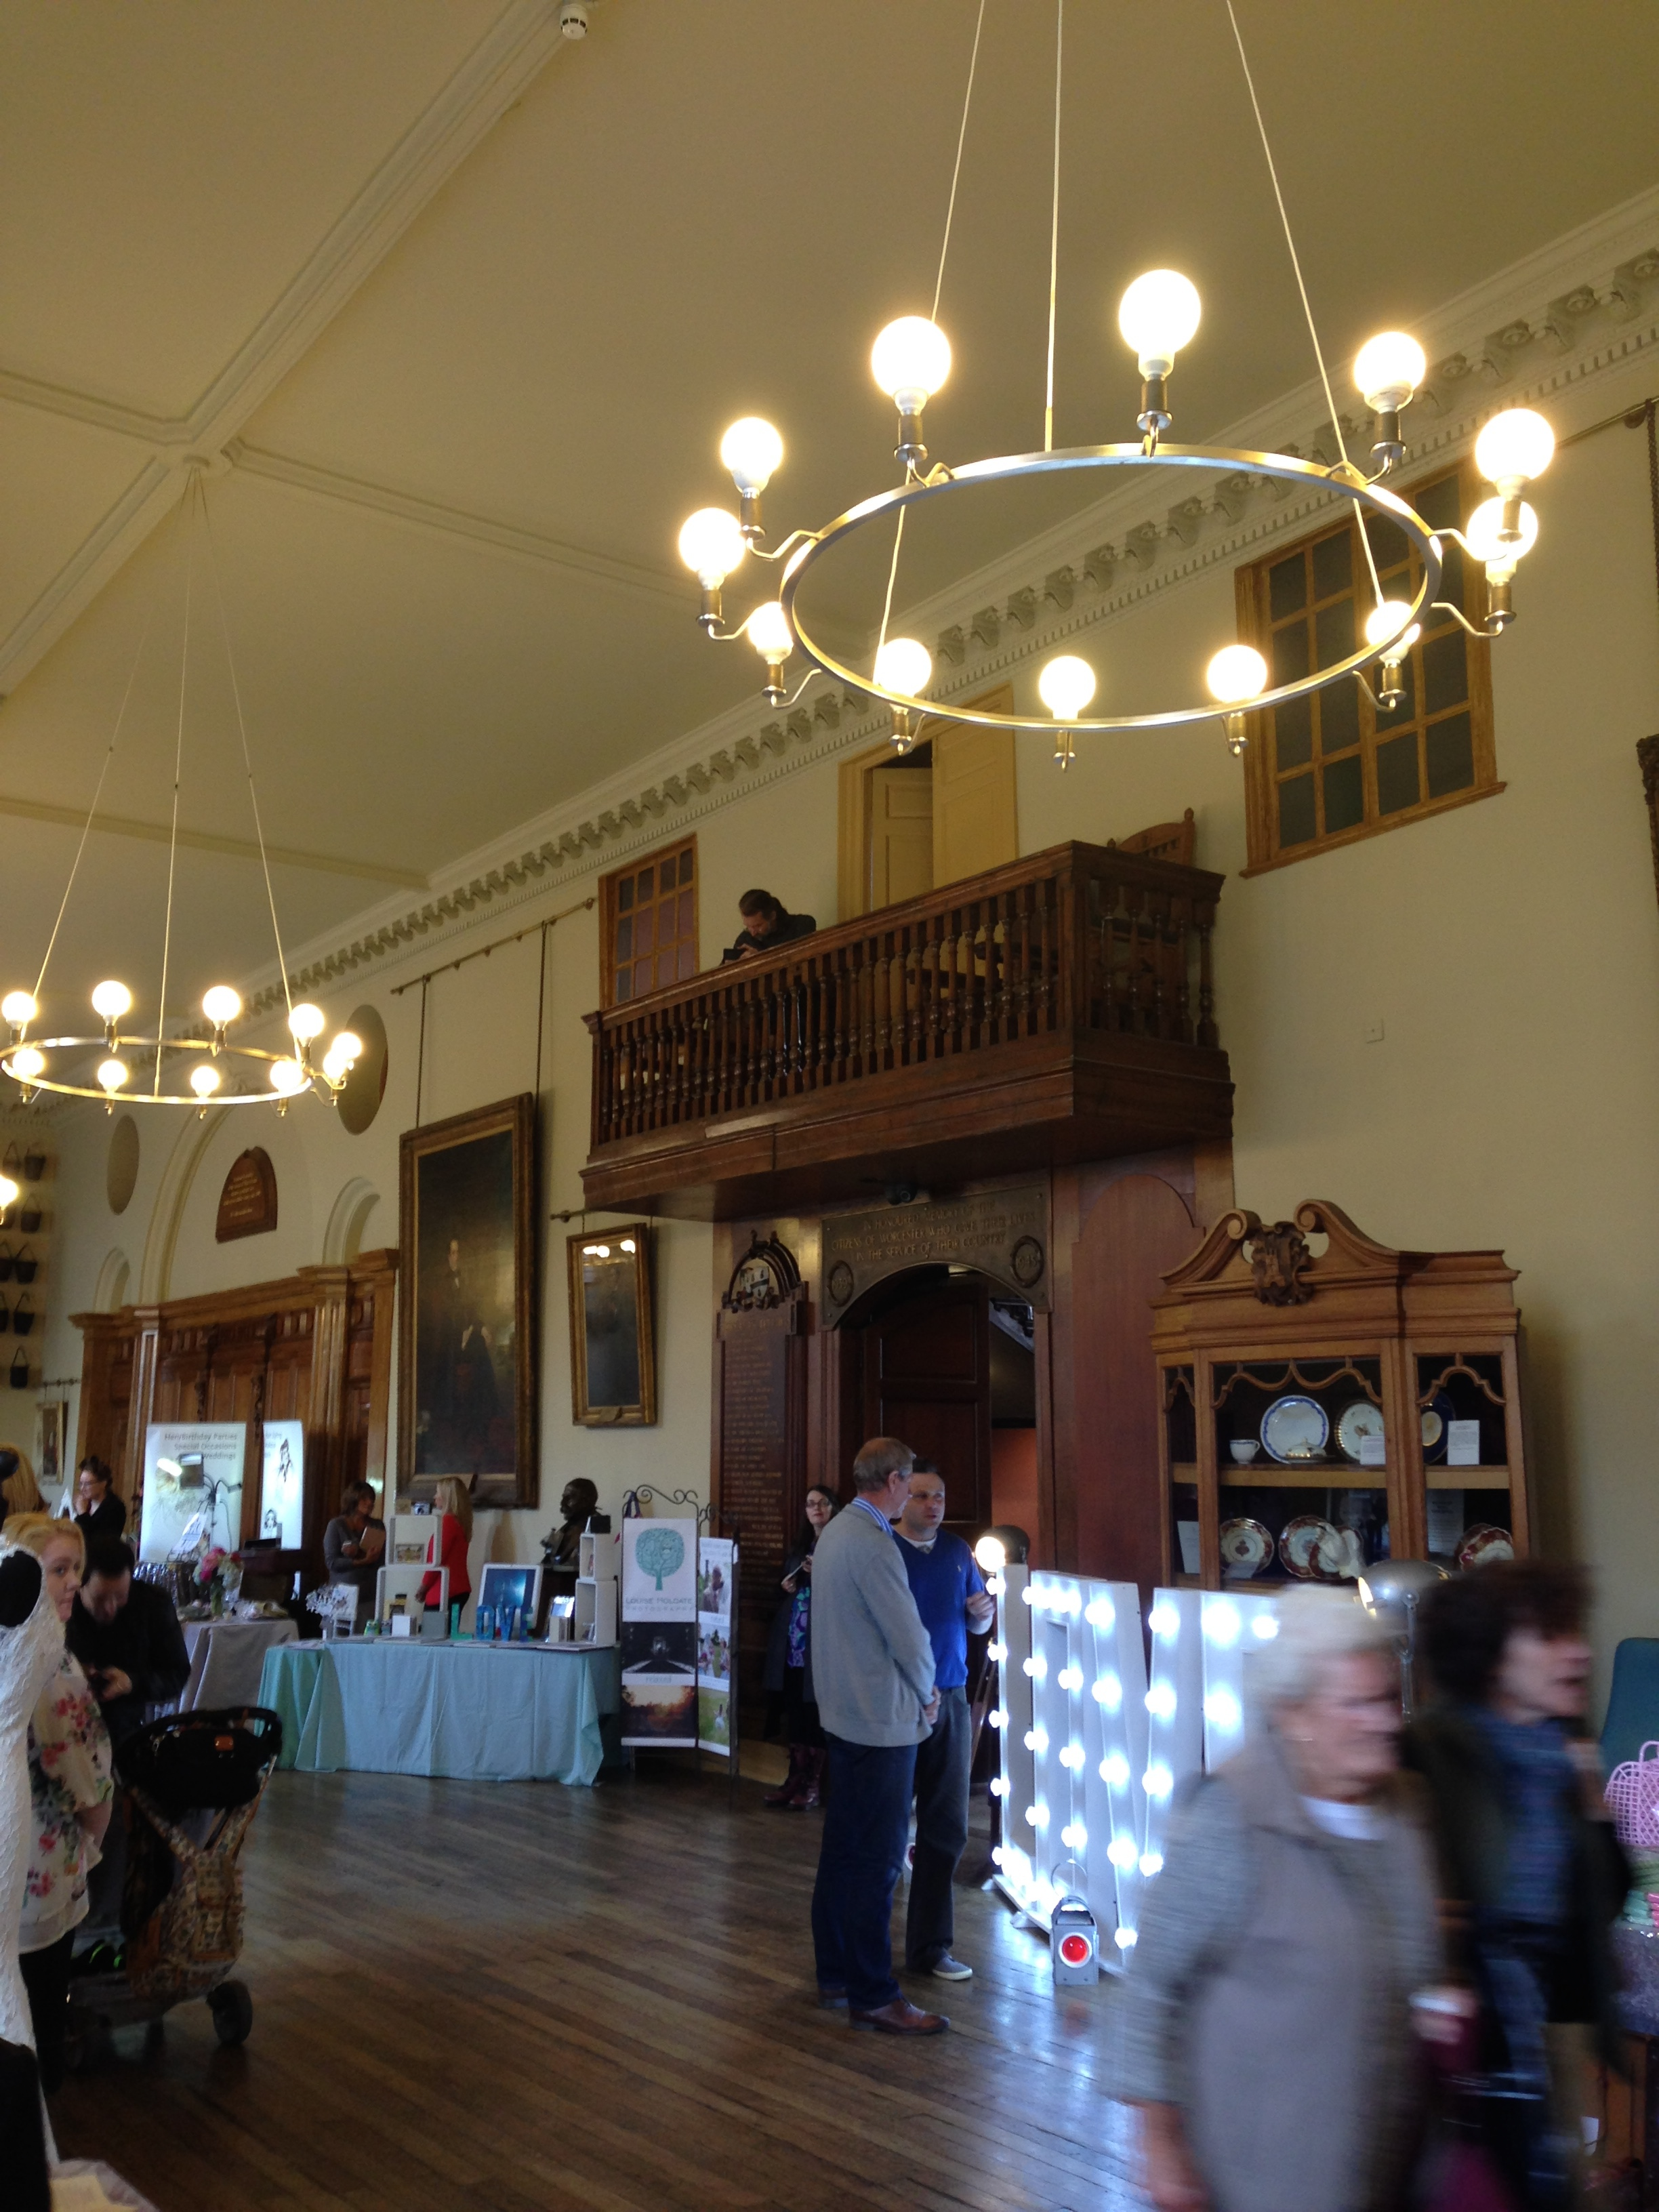 Inside Worcester Guildhall